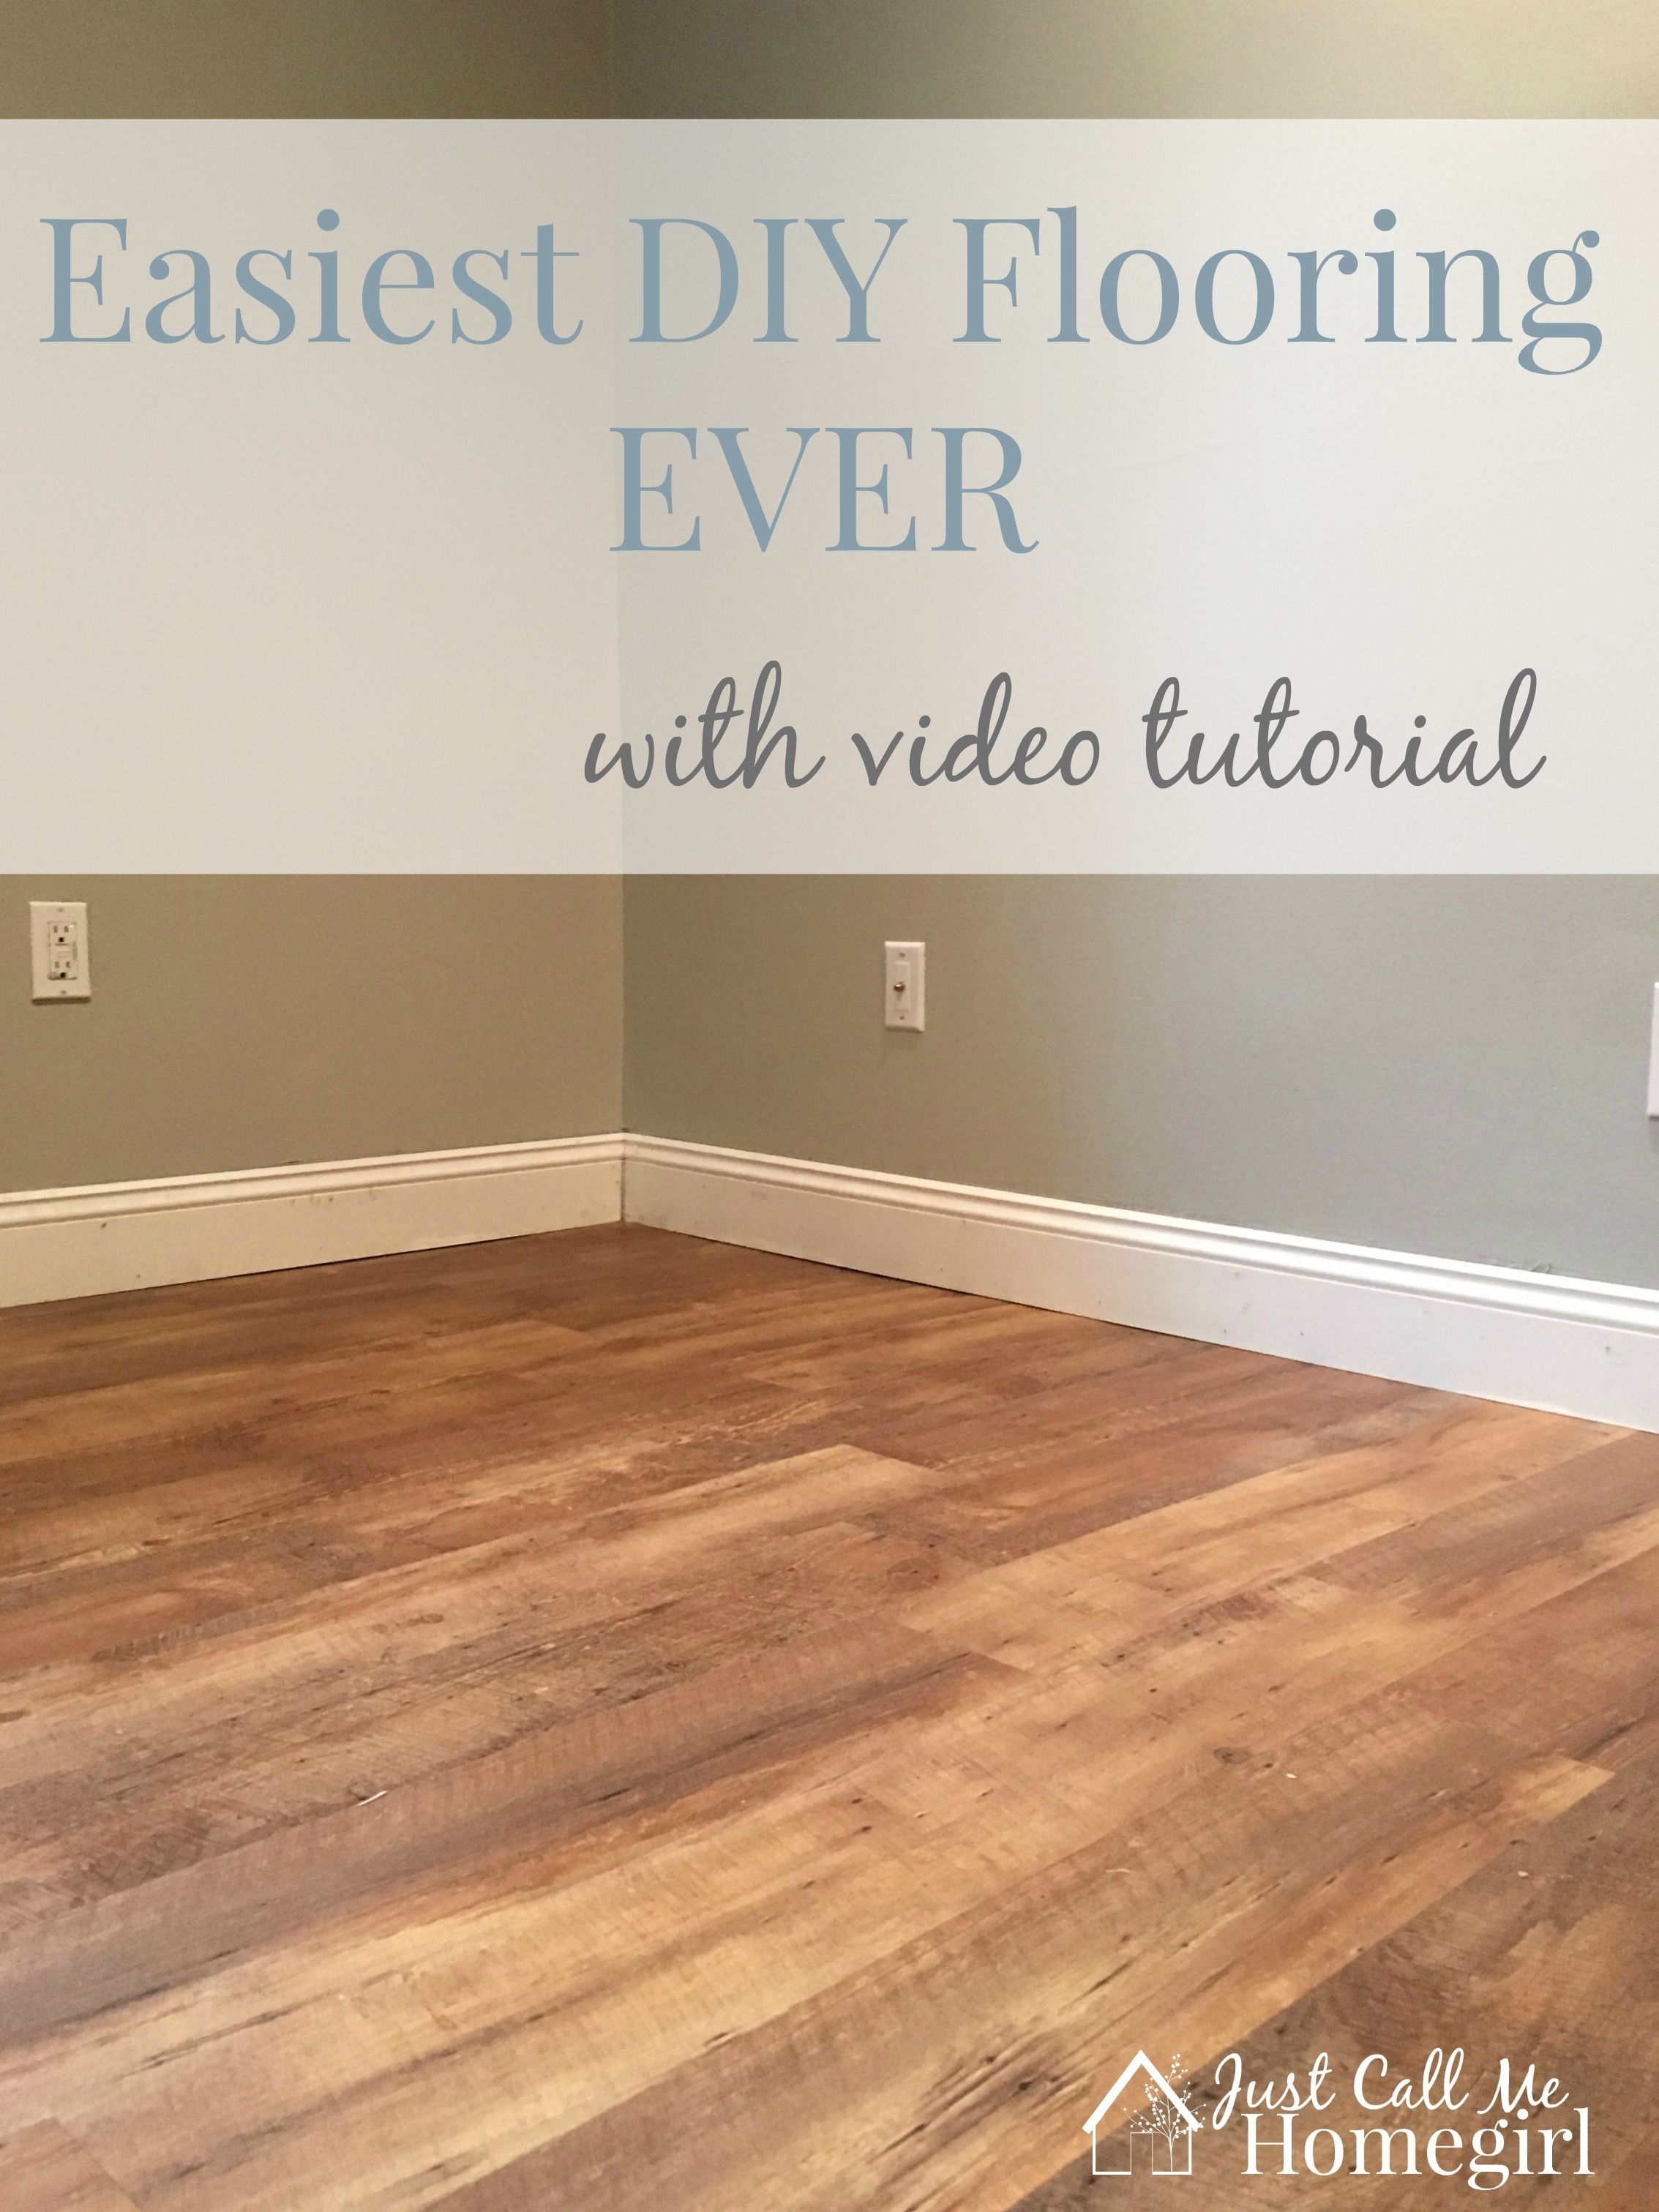 flooring floors marvelous floor intended info diy style donatz on tips under concrete home simple for interior easy